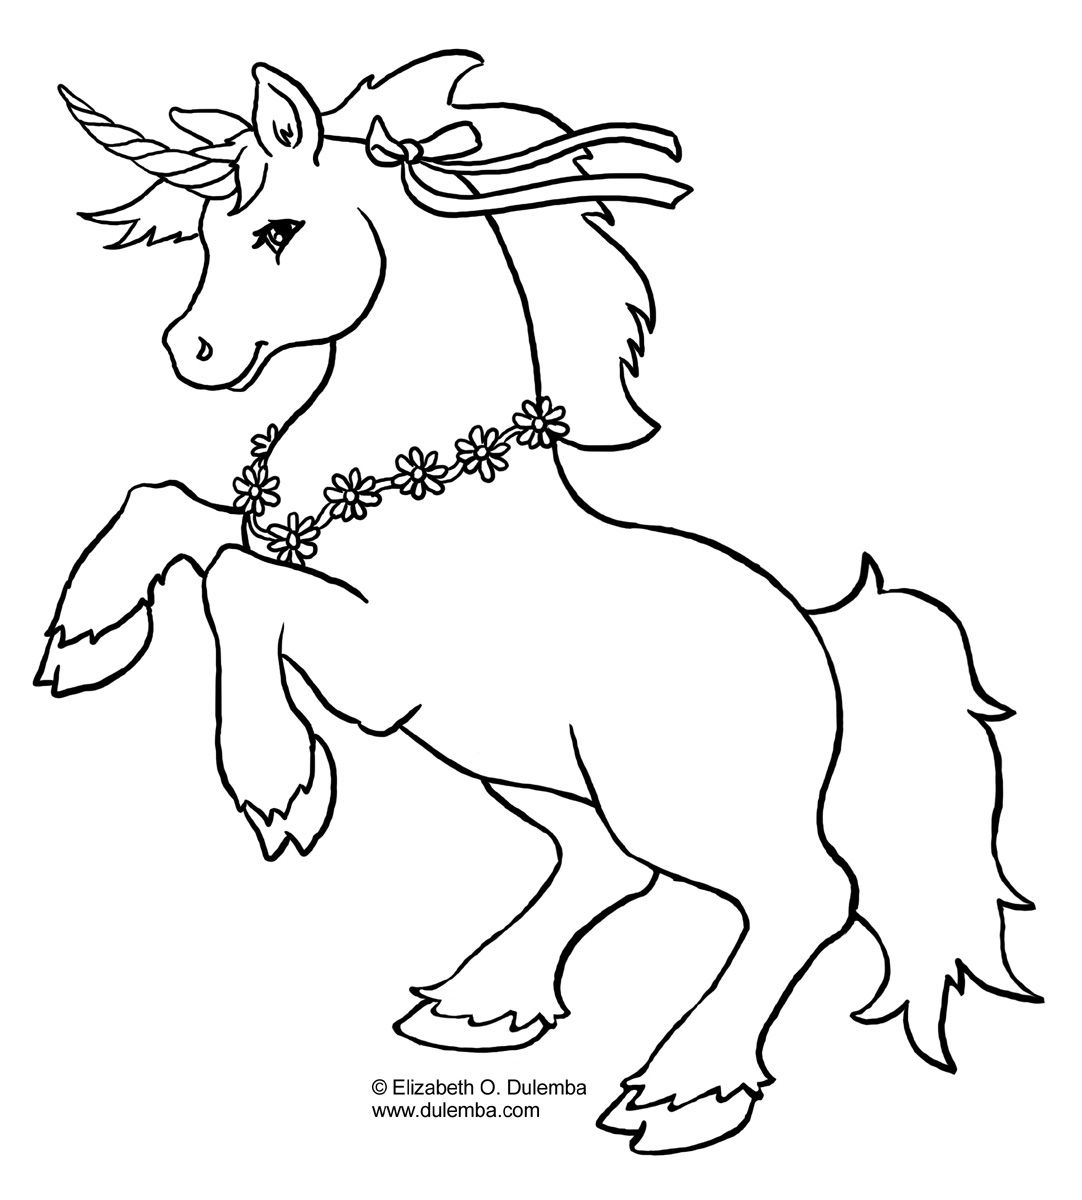 Coloring To Print Magical Characters Unicorn Number 68211 Unicorn Coloring Pages Unicorn Pictures To Color Unicorn Drawing [ 1200 x 1082 Pixel ]